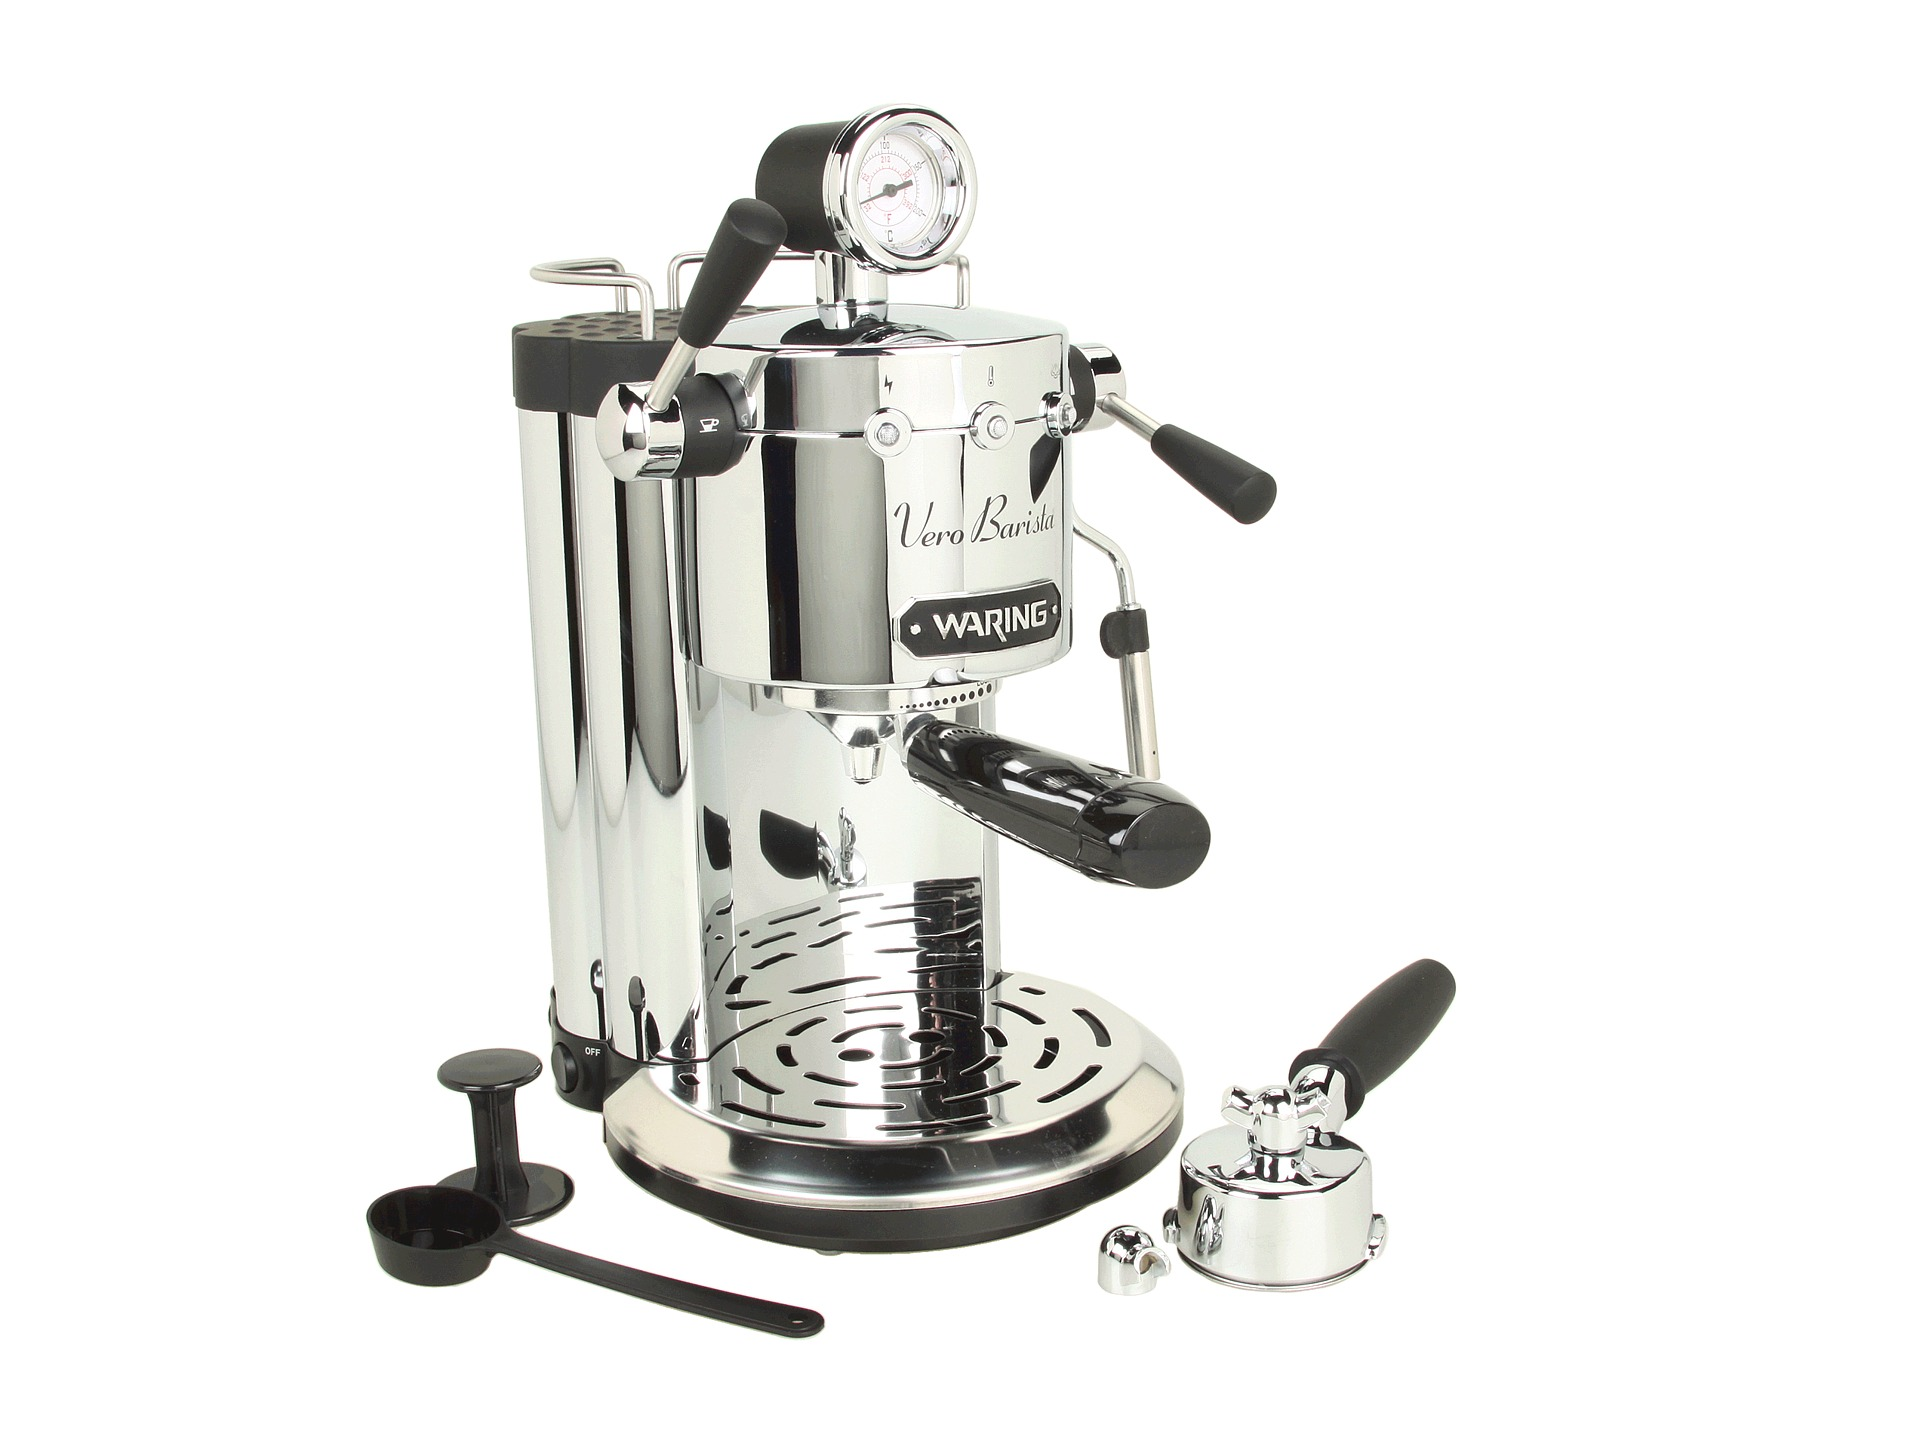 No results for waring pro es1500 espresso maker - Search Zappos.com